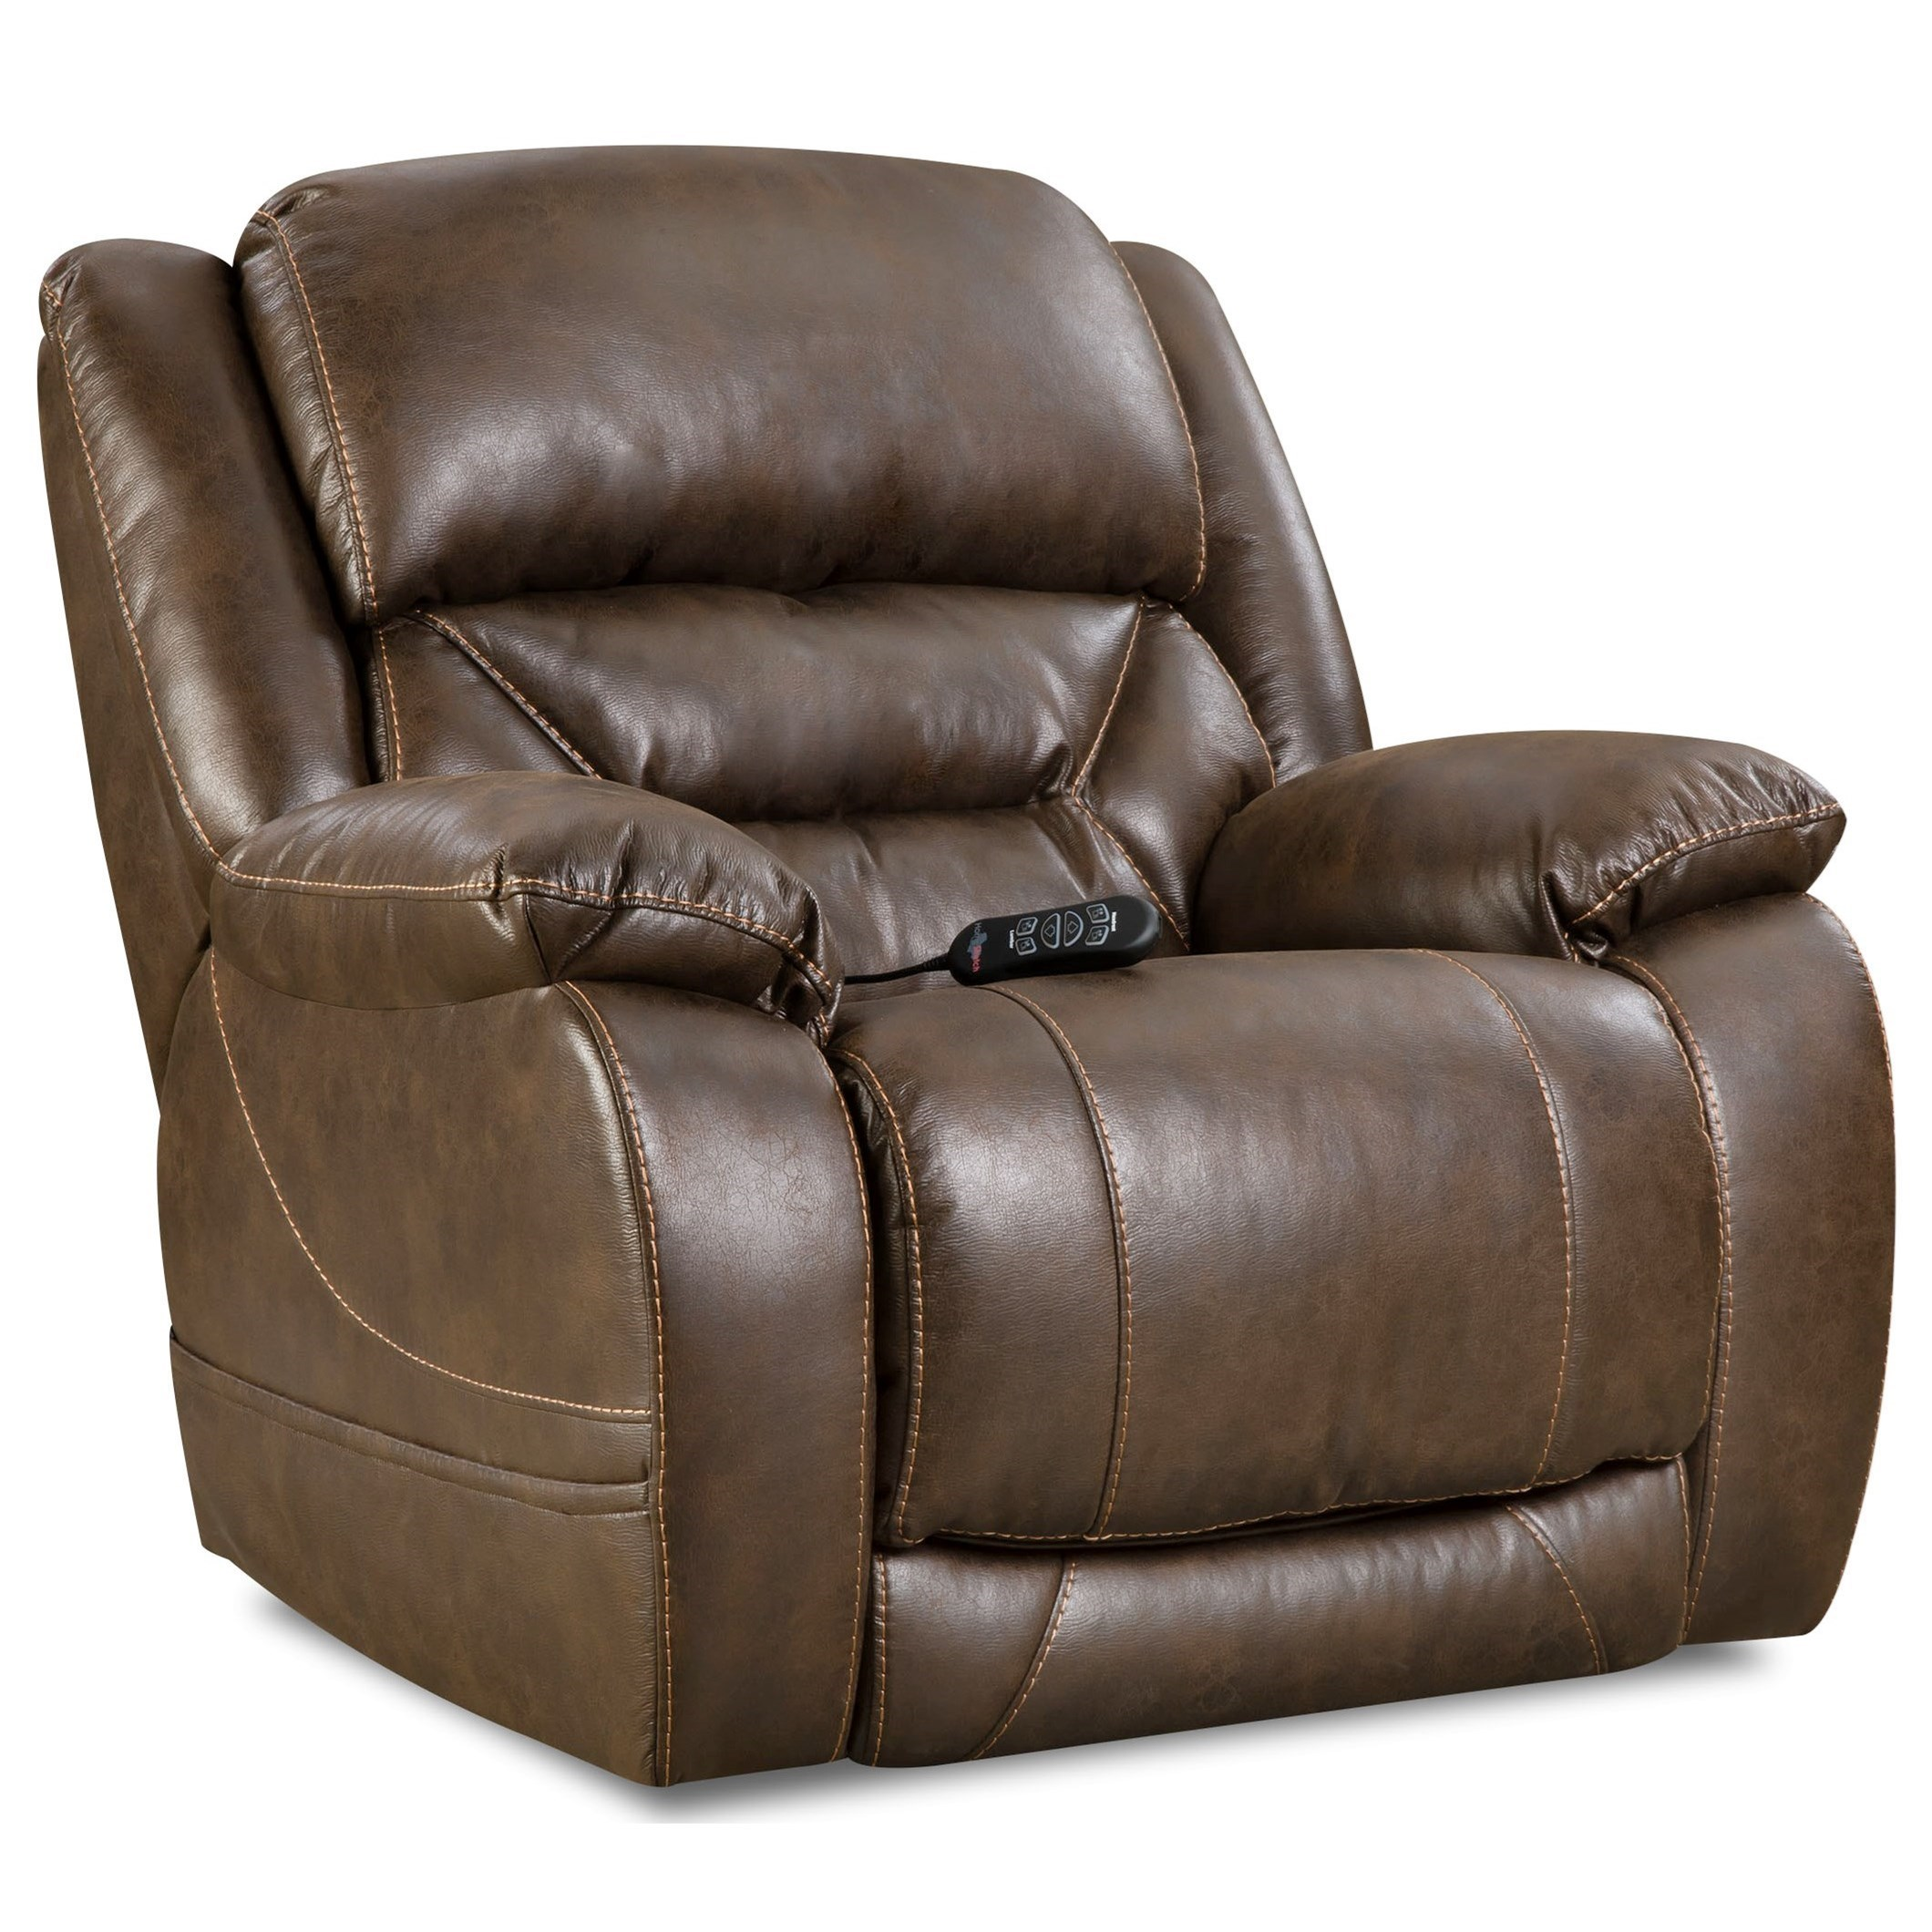 HomeStretch Enterprise Casual Power Recliner With Power